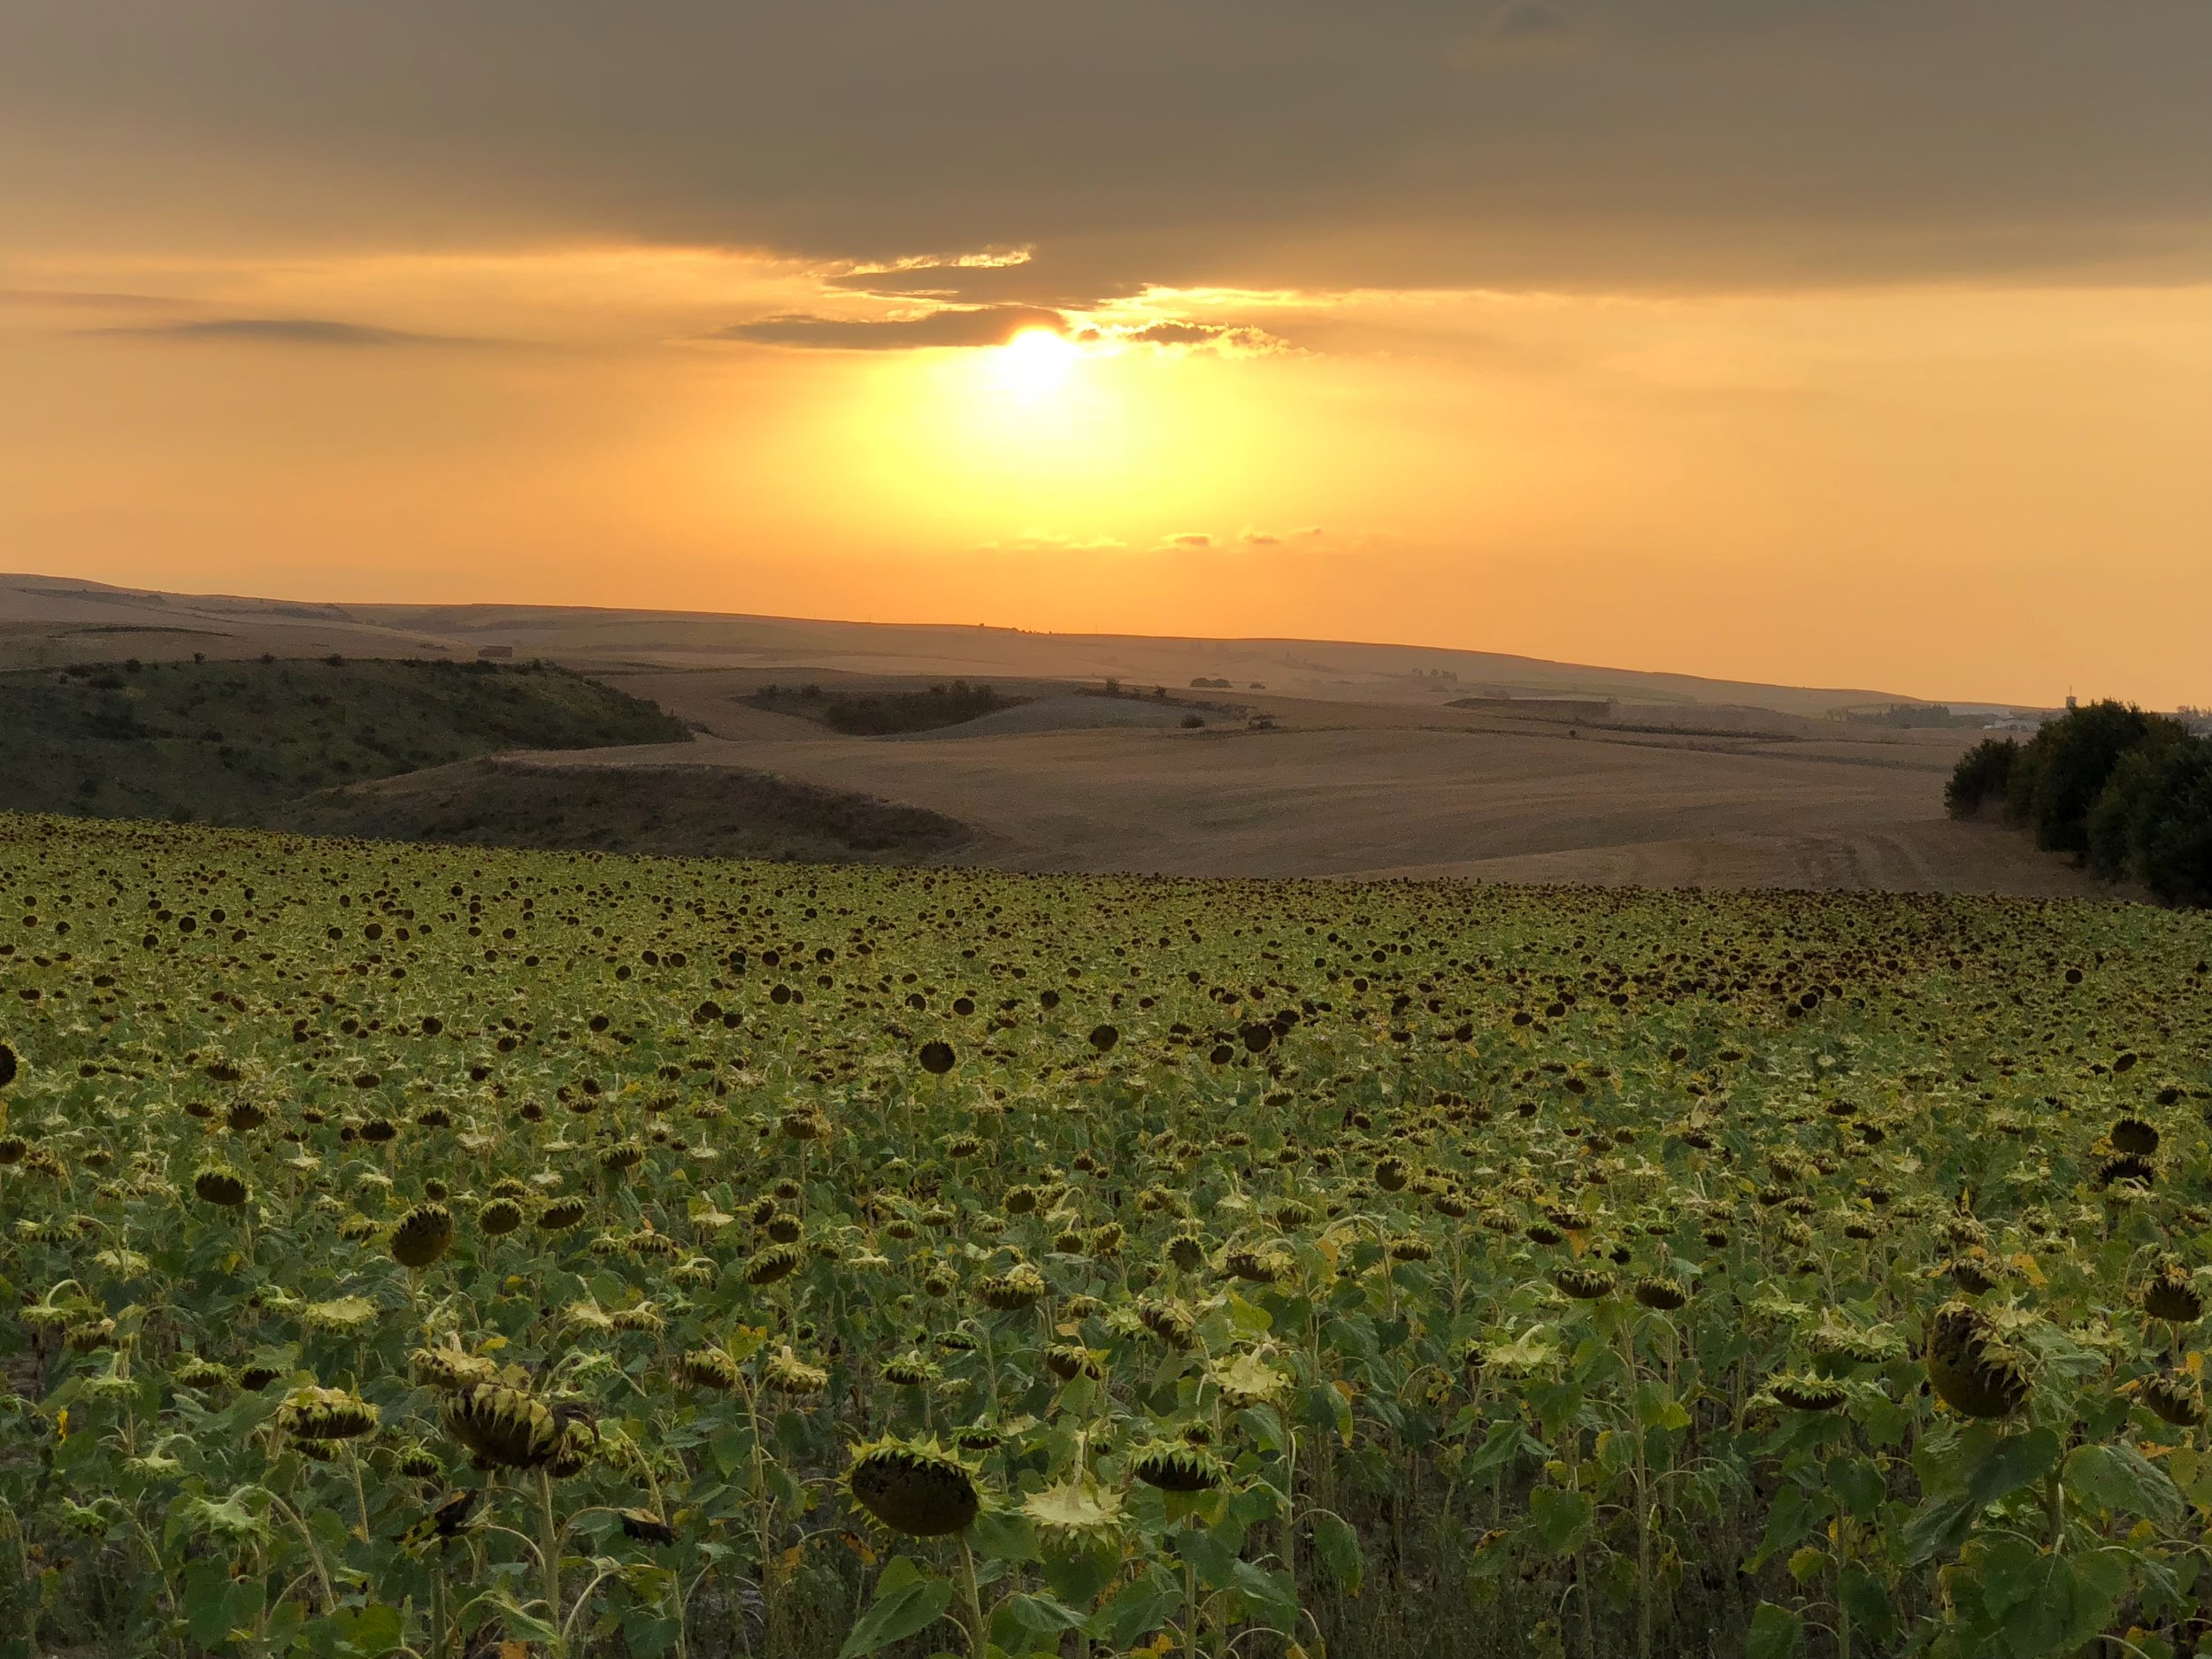 Sunset over sunflower fields seen after entering La Rioja on the N-232